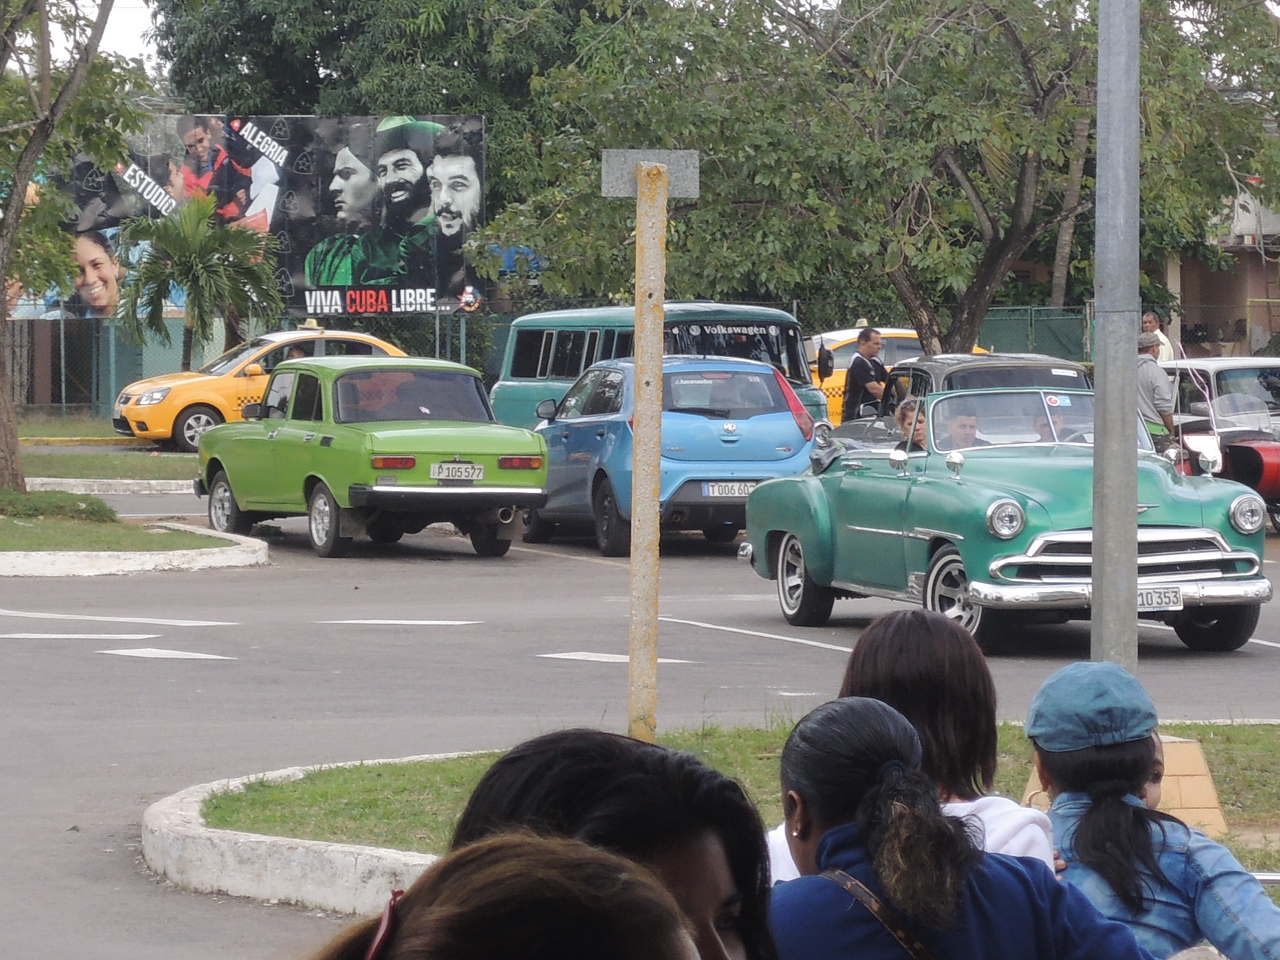 Another look at that 50 or 51 Chevy convertible.  The little green car is a Lada, a communist built verison of an early 1970's Fiat 124 sedan.